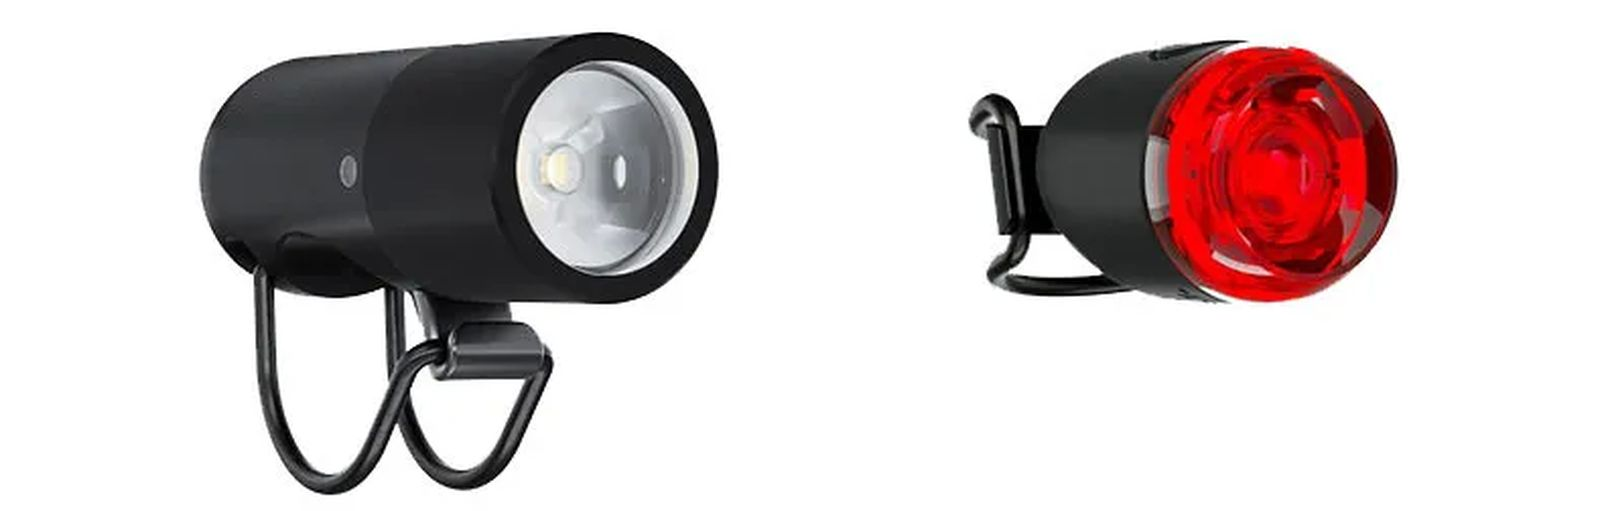 knog-plugger-twinpack-front-and-rear-bicycle-lights best back to school bike accessories